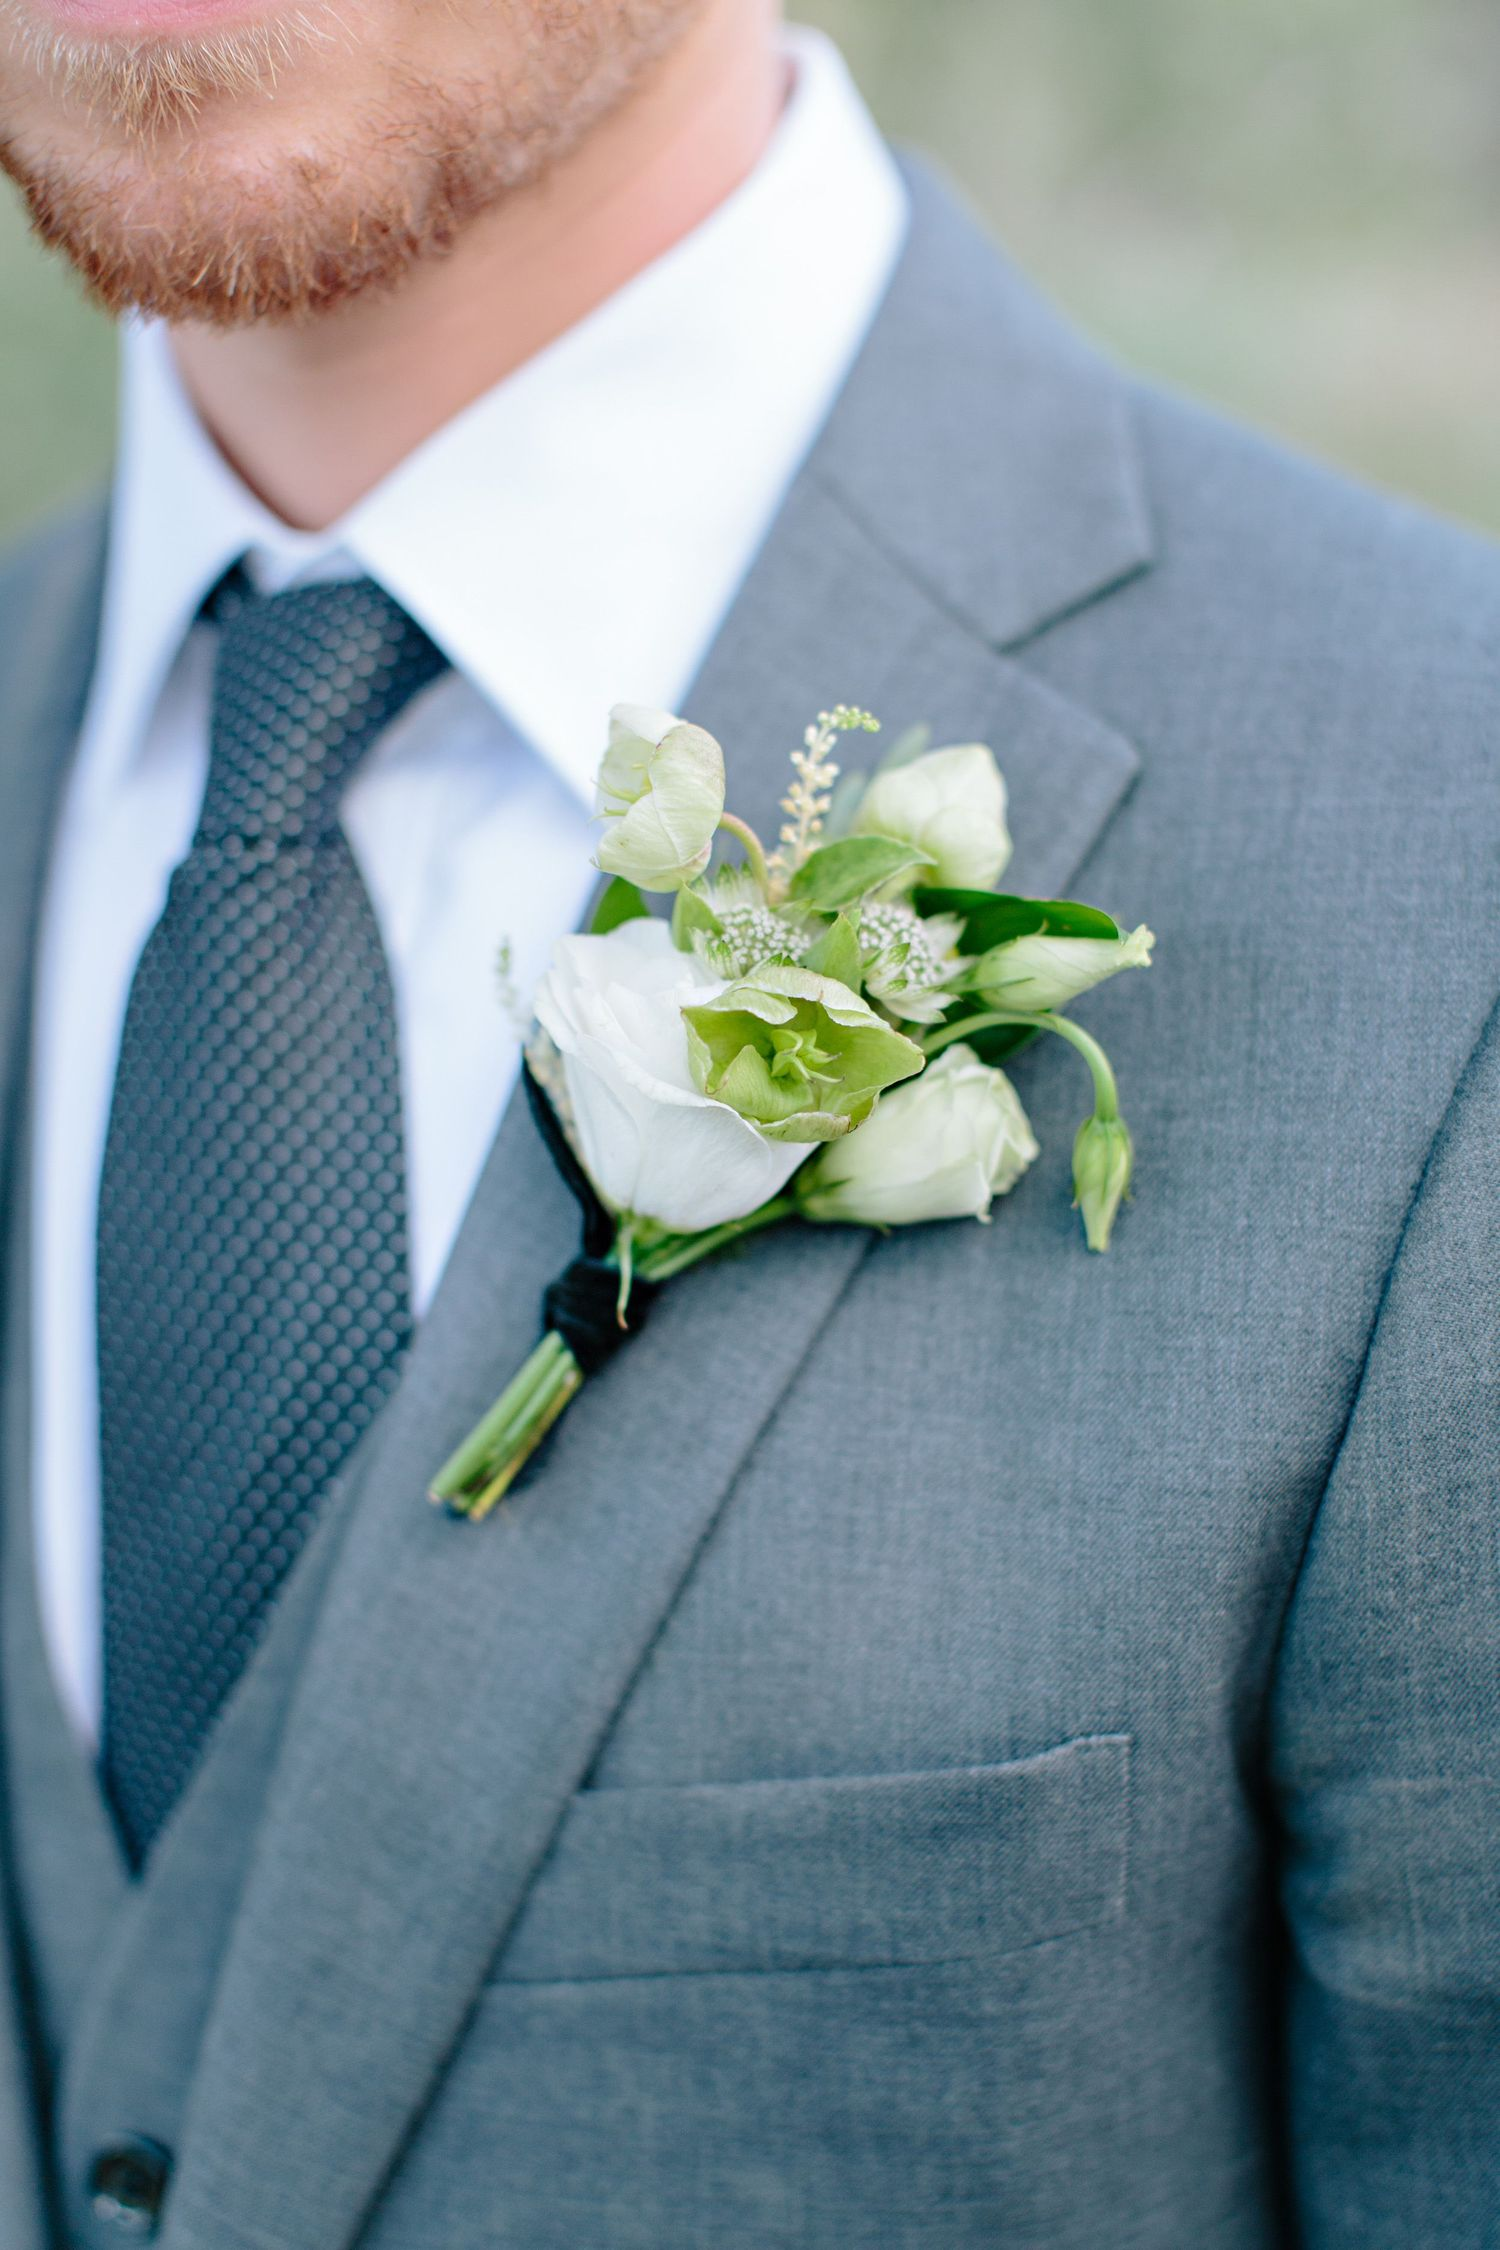 groom boutonniere with white rose